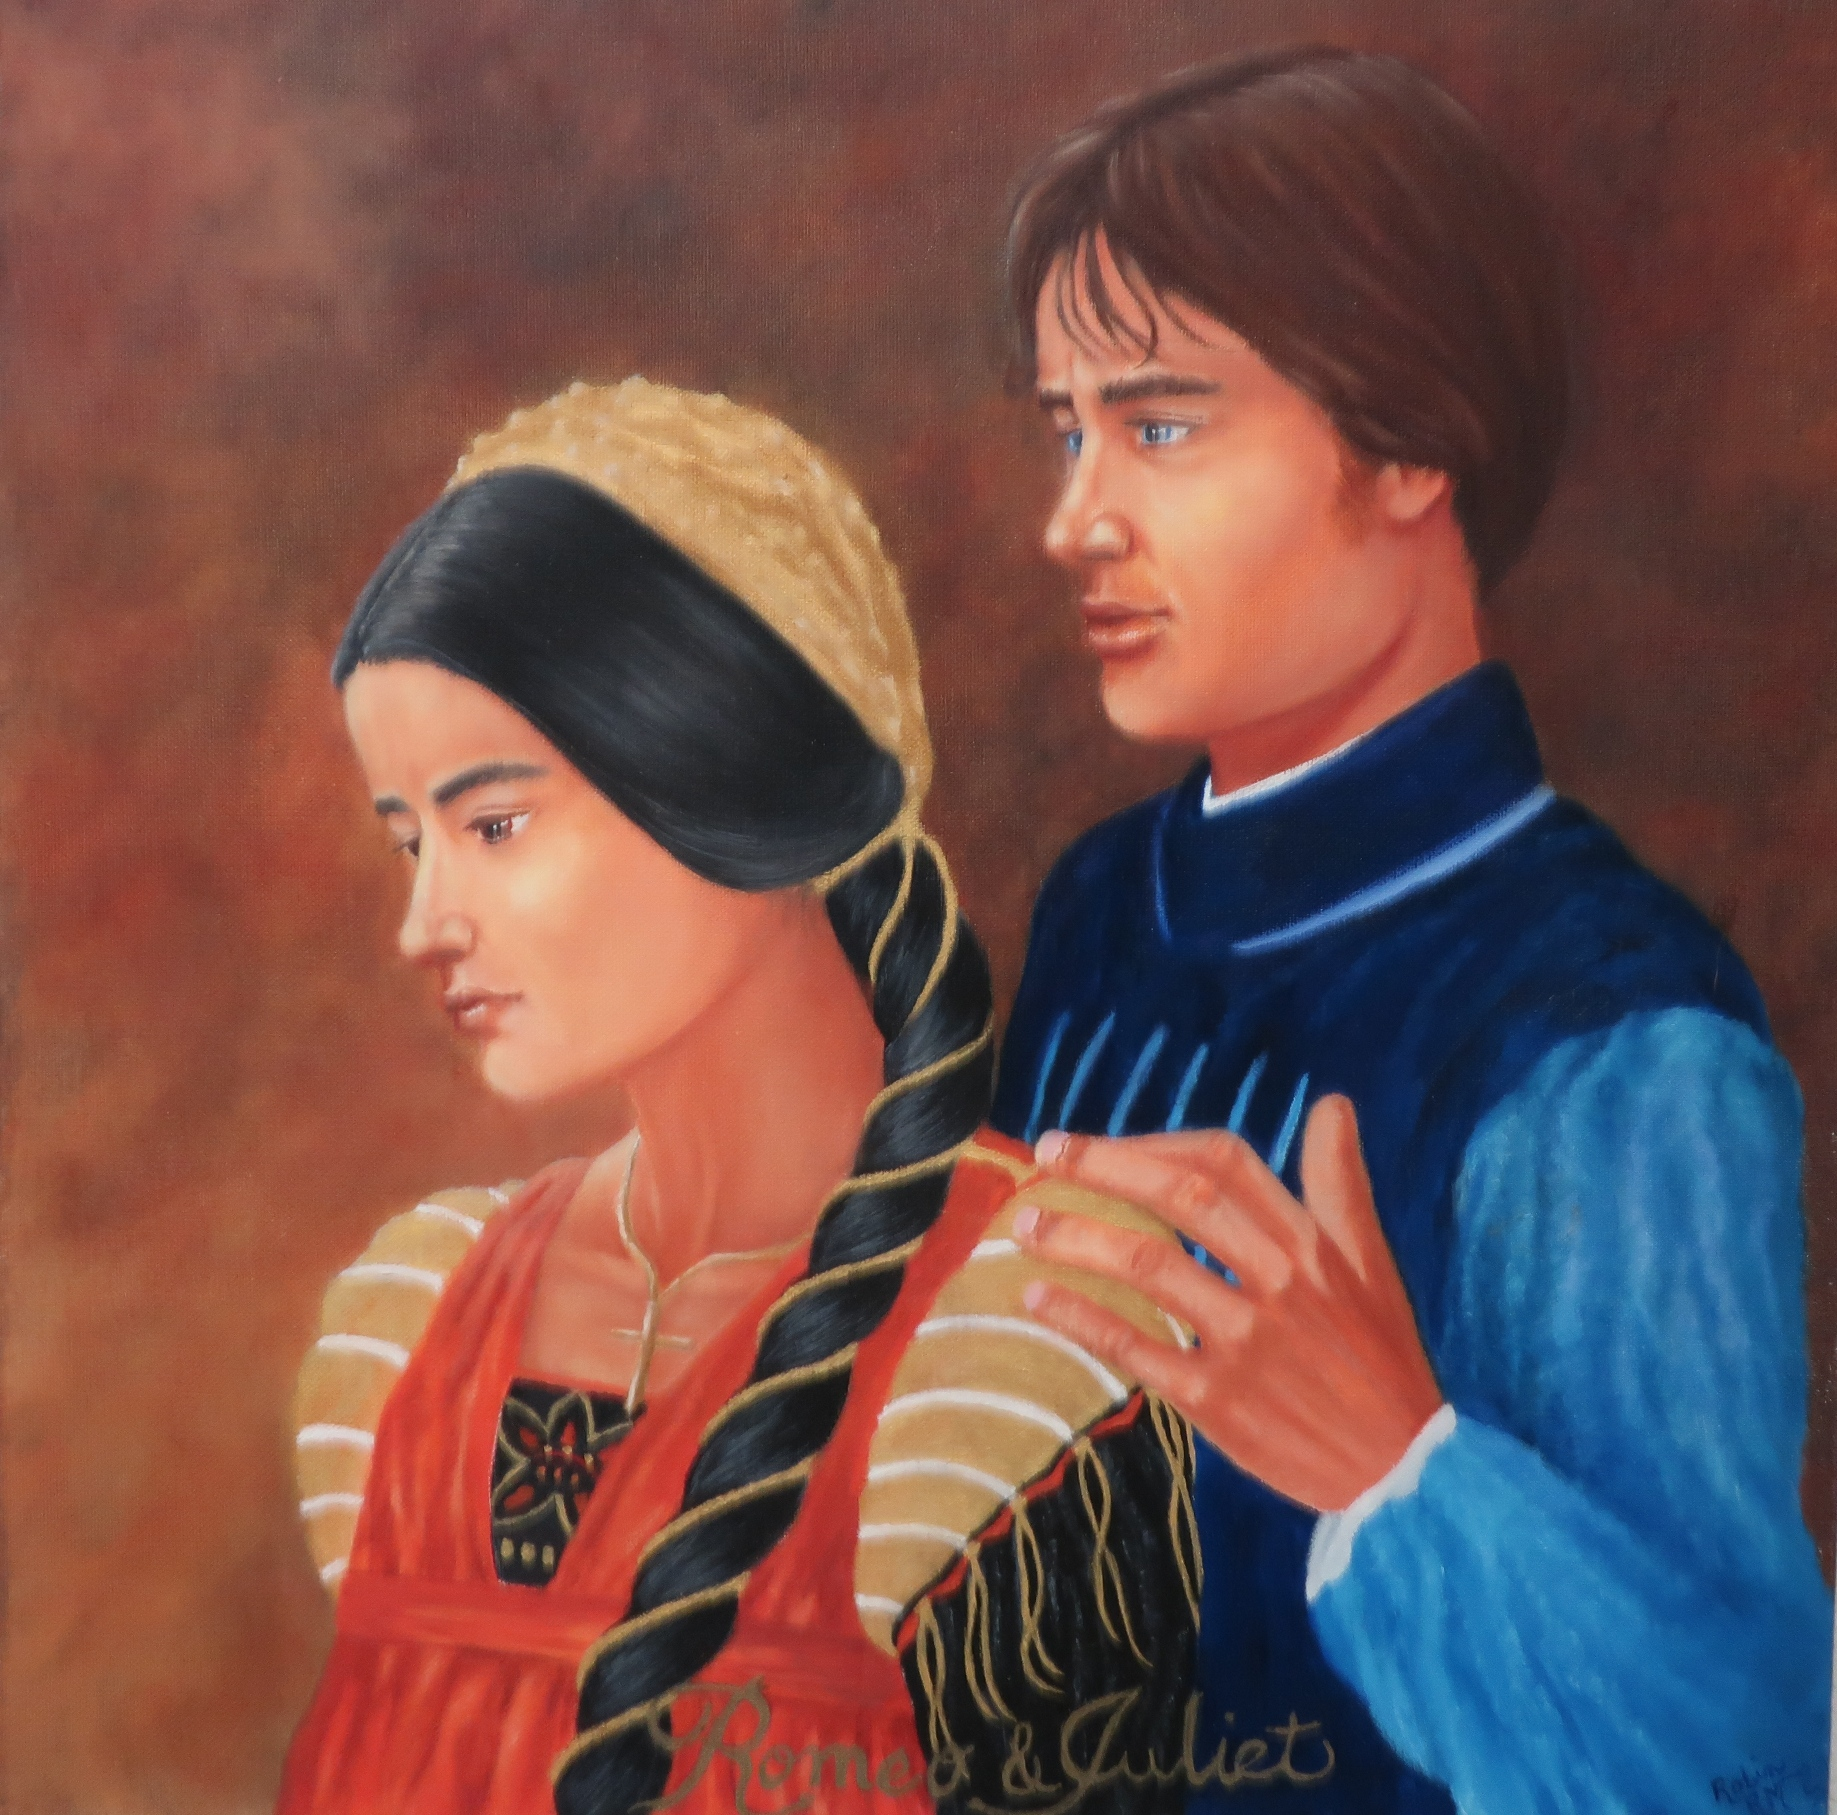 Romeo and Juliet artwork by Robin mcintyre - art listed for sale on Artplode